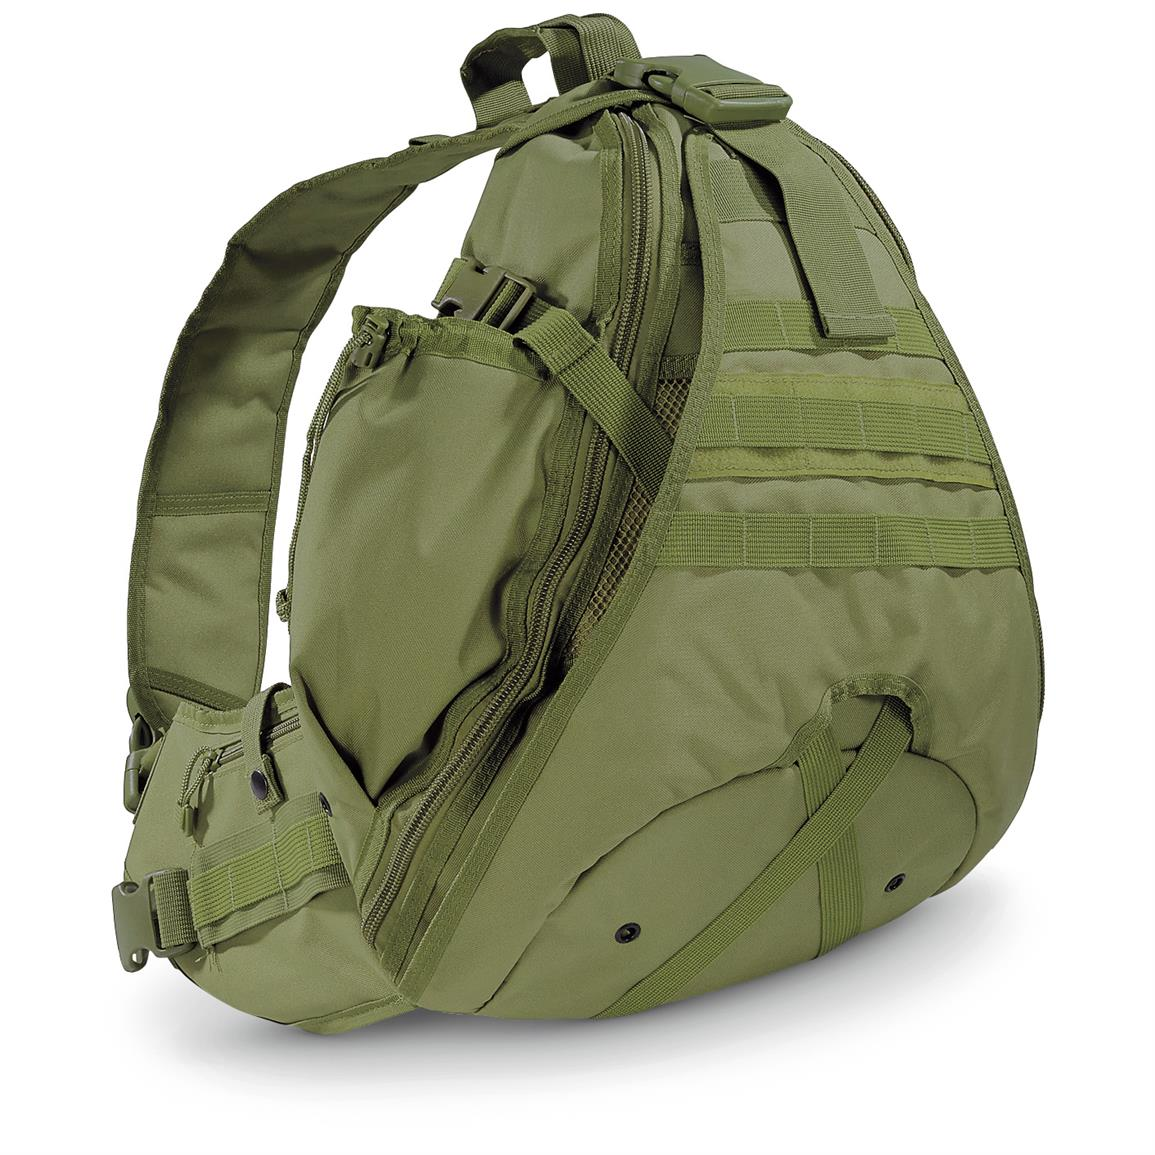 Cactus Jack Enhanced Sling Bag, Olive Drab